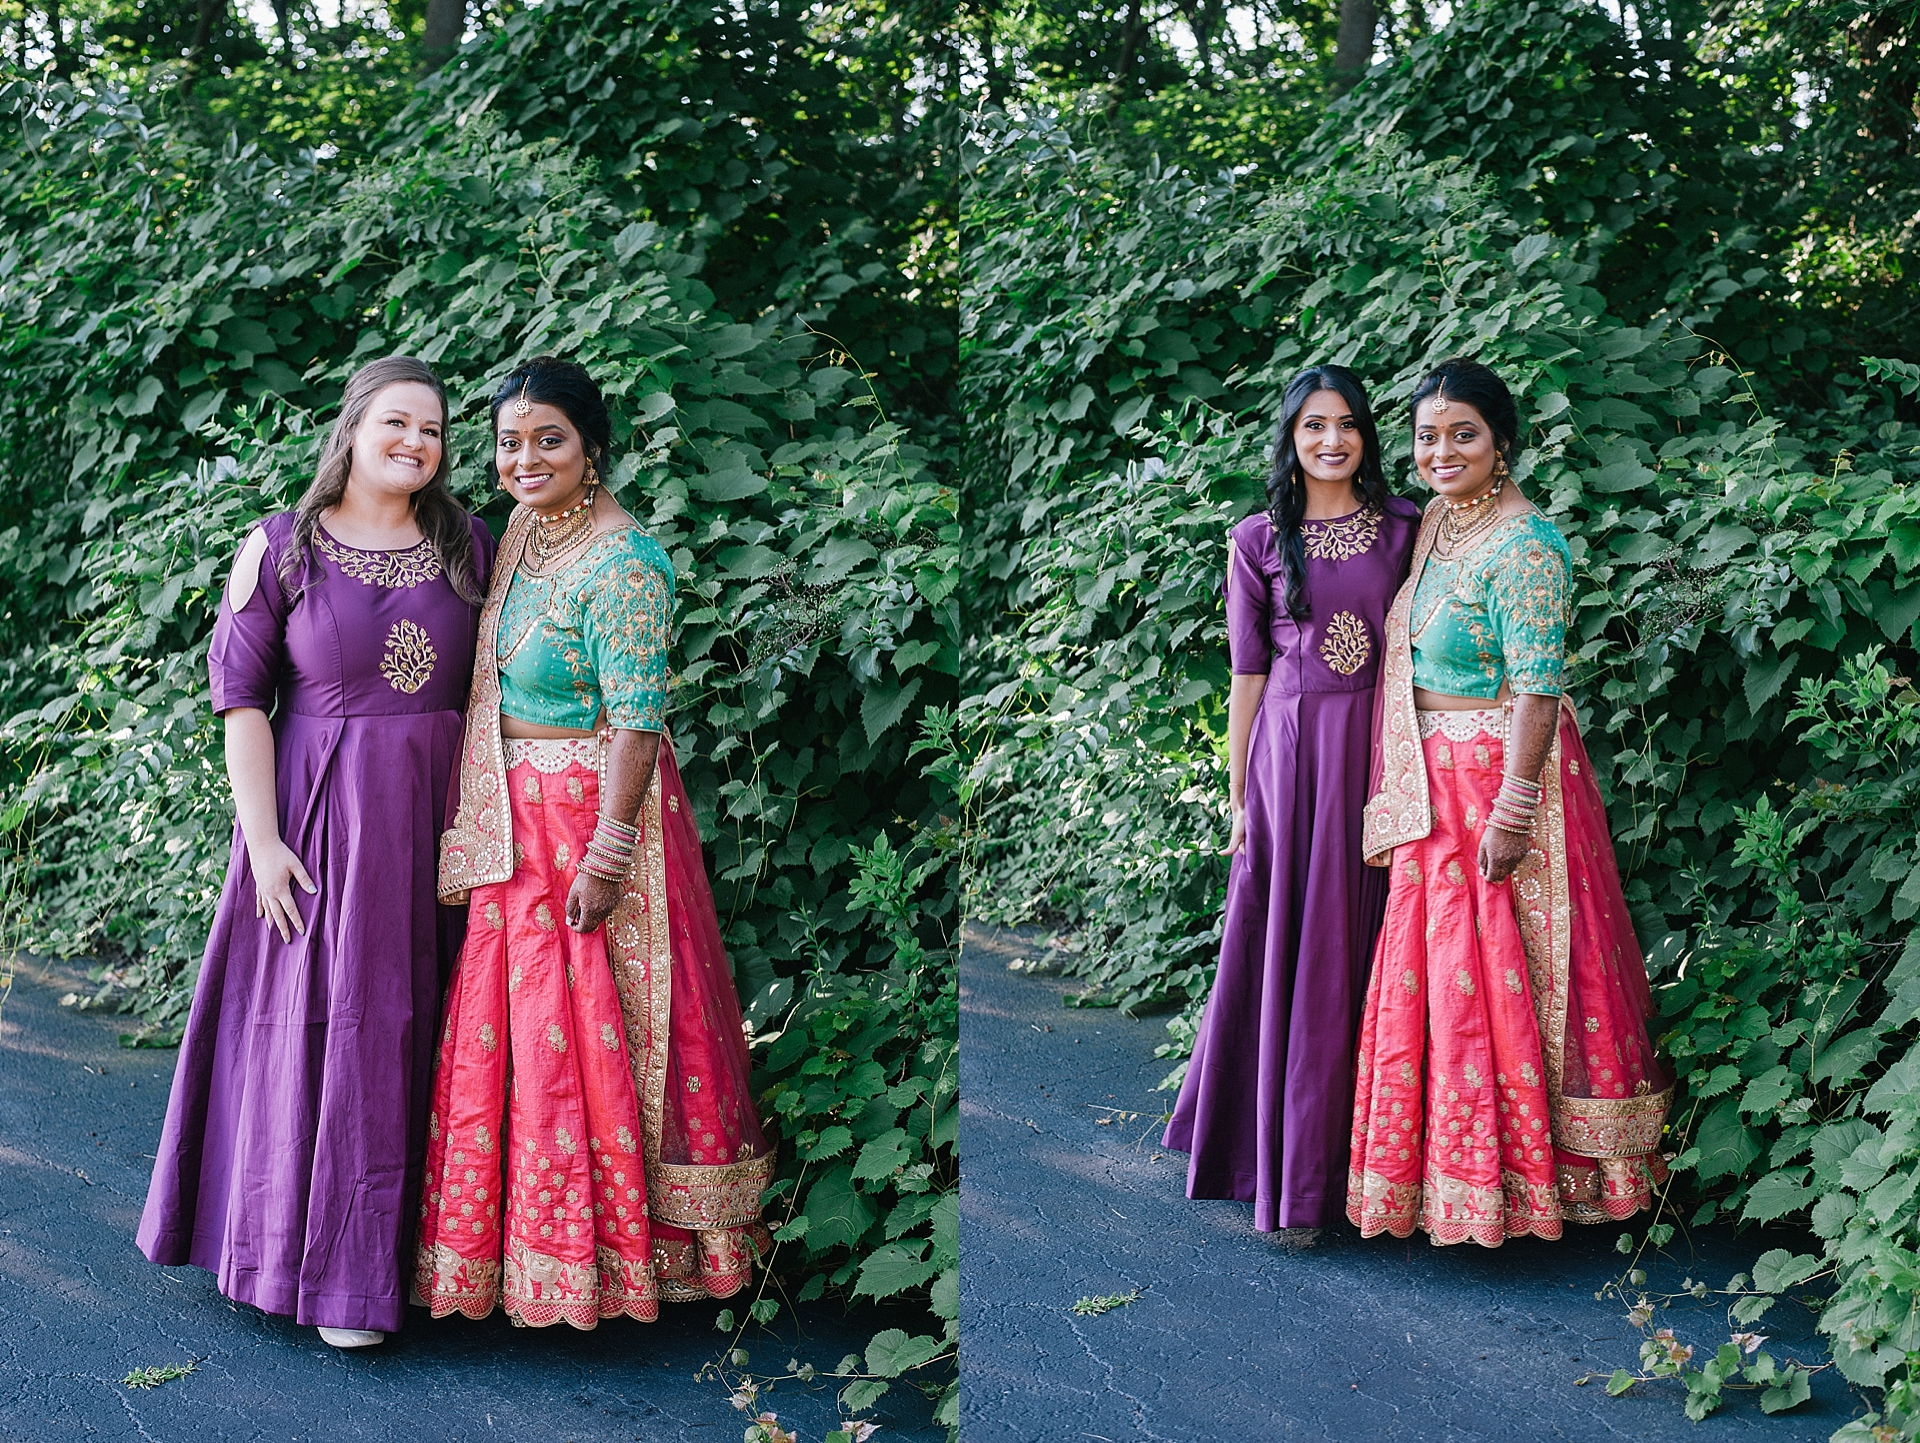 Prexa_Harry_Columbus_Crown_Plaza_Indian_Wedding0037.jpg